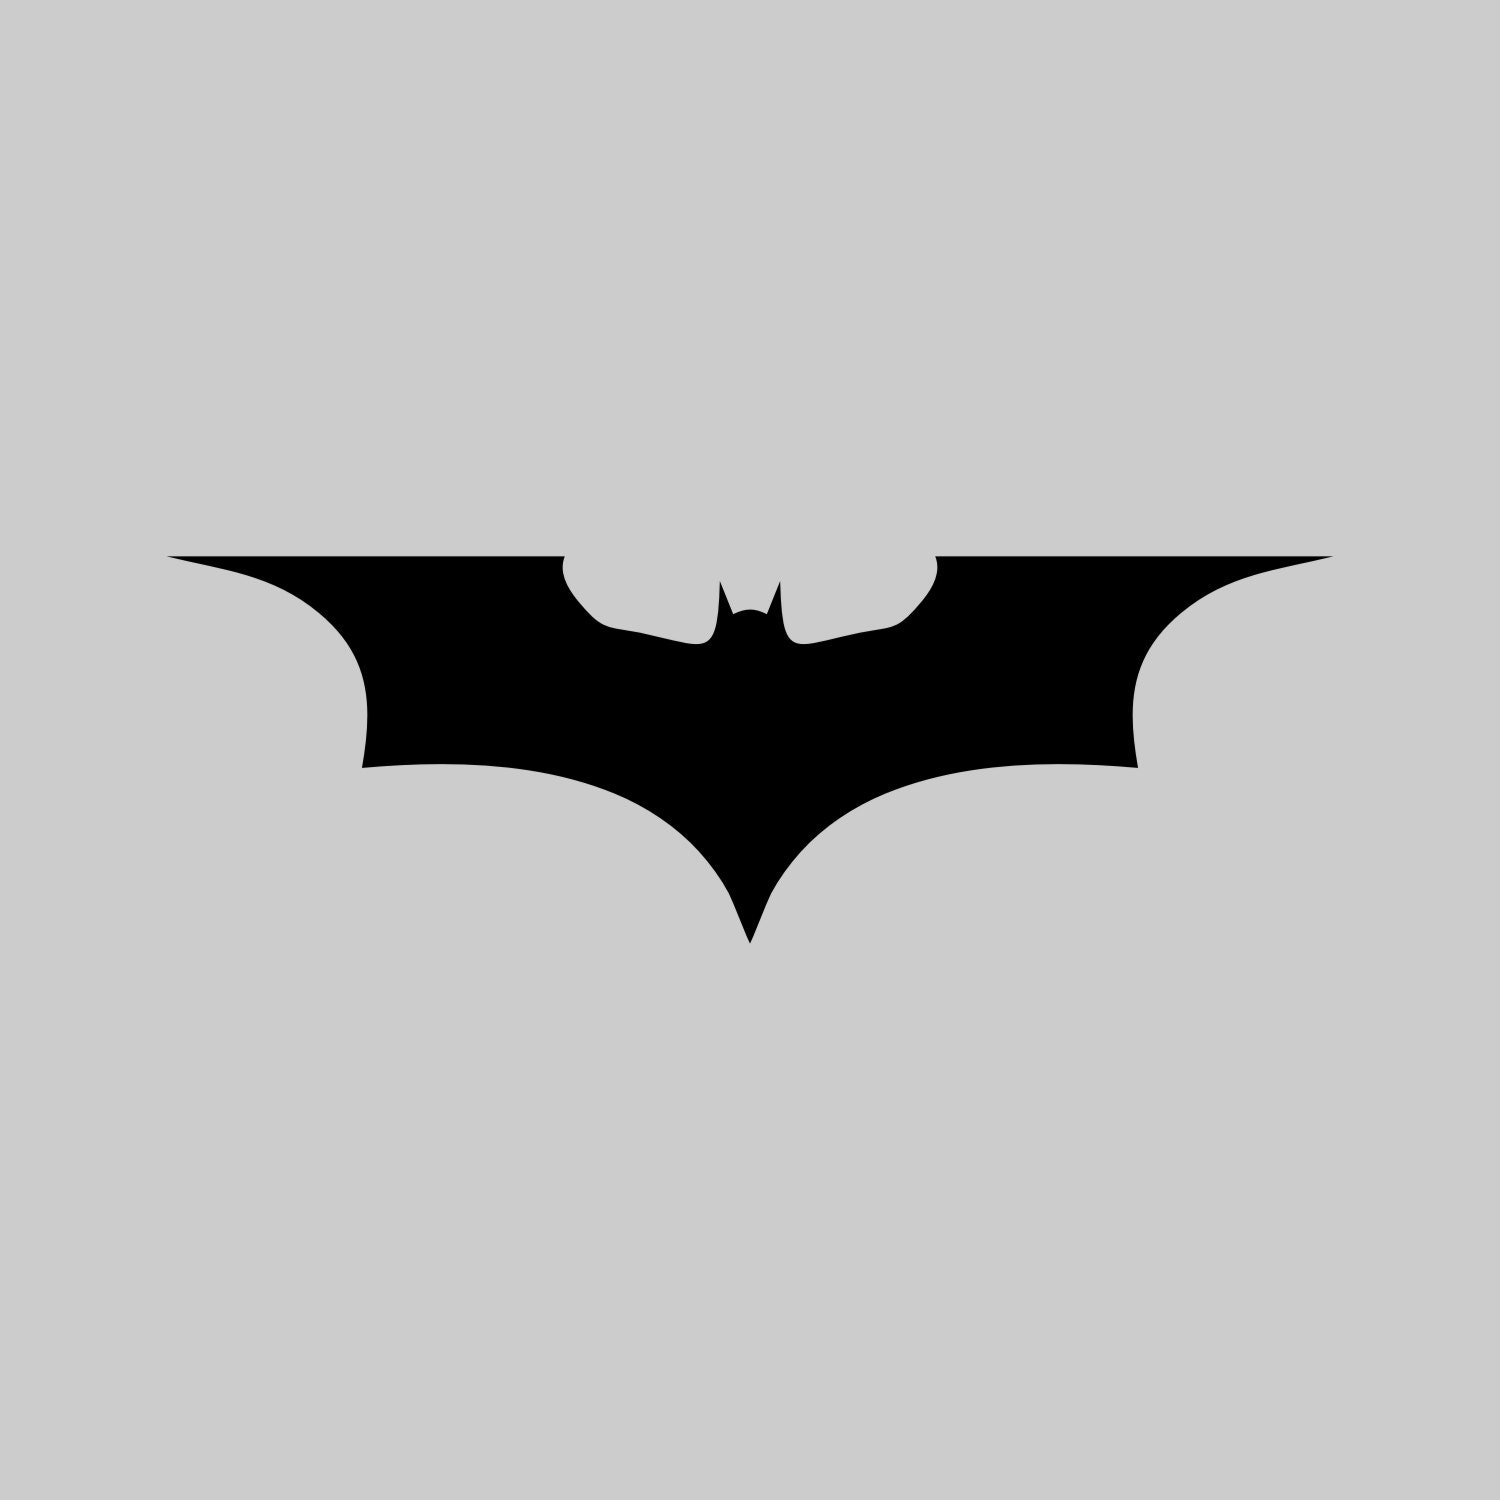 Popular items for batman stickers on Etsy